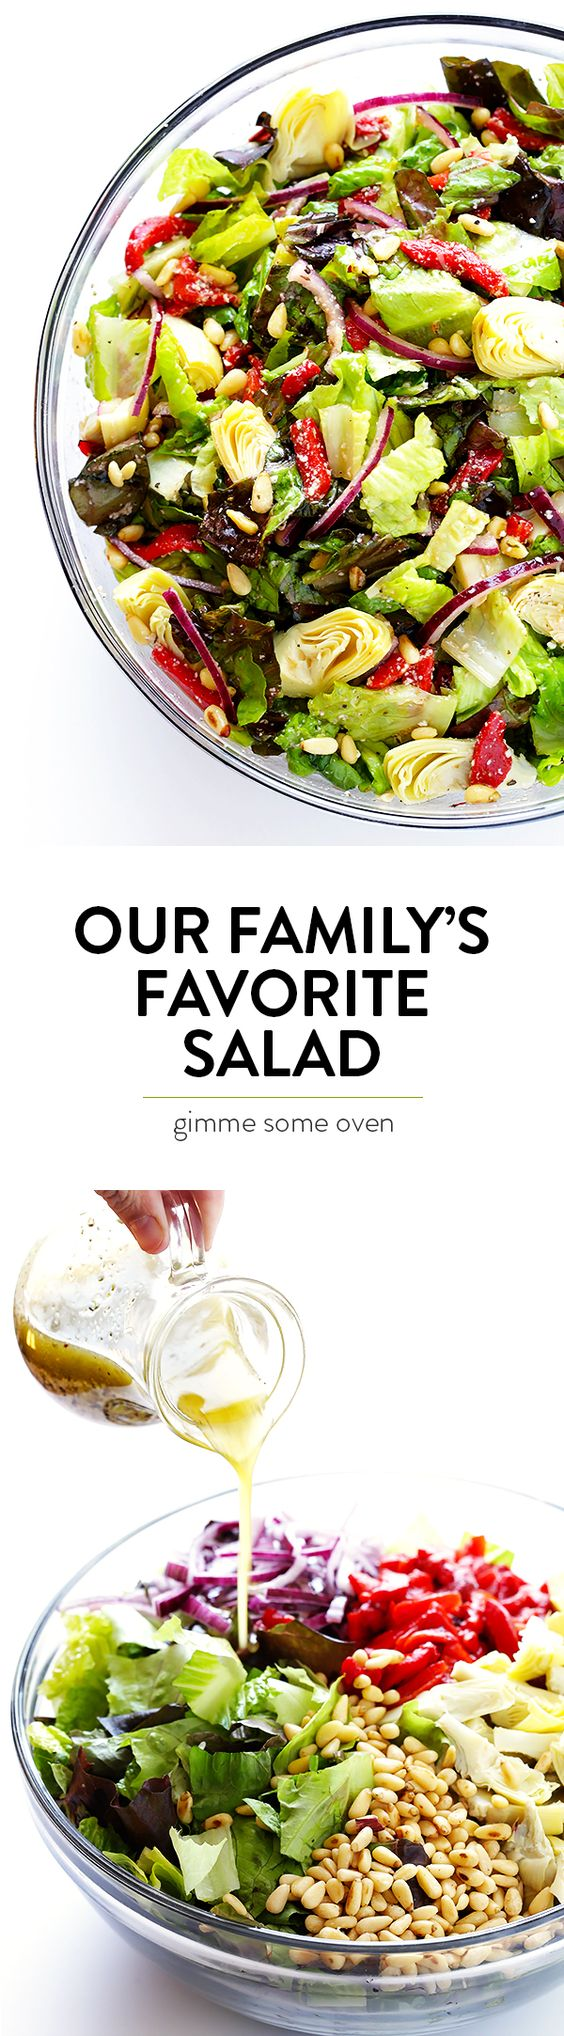 Our family's favorite salad recipe via Gimme Some Oven is made with lots of artichoke hearts, roasted red peppers, toasted pine nuts, and a zesty Parmesan vinaigrette. SO delicious, and always a crowd favorite!